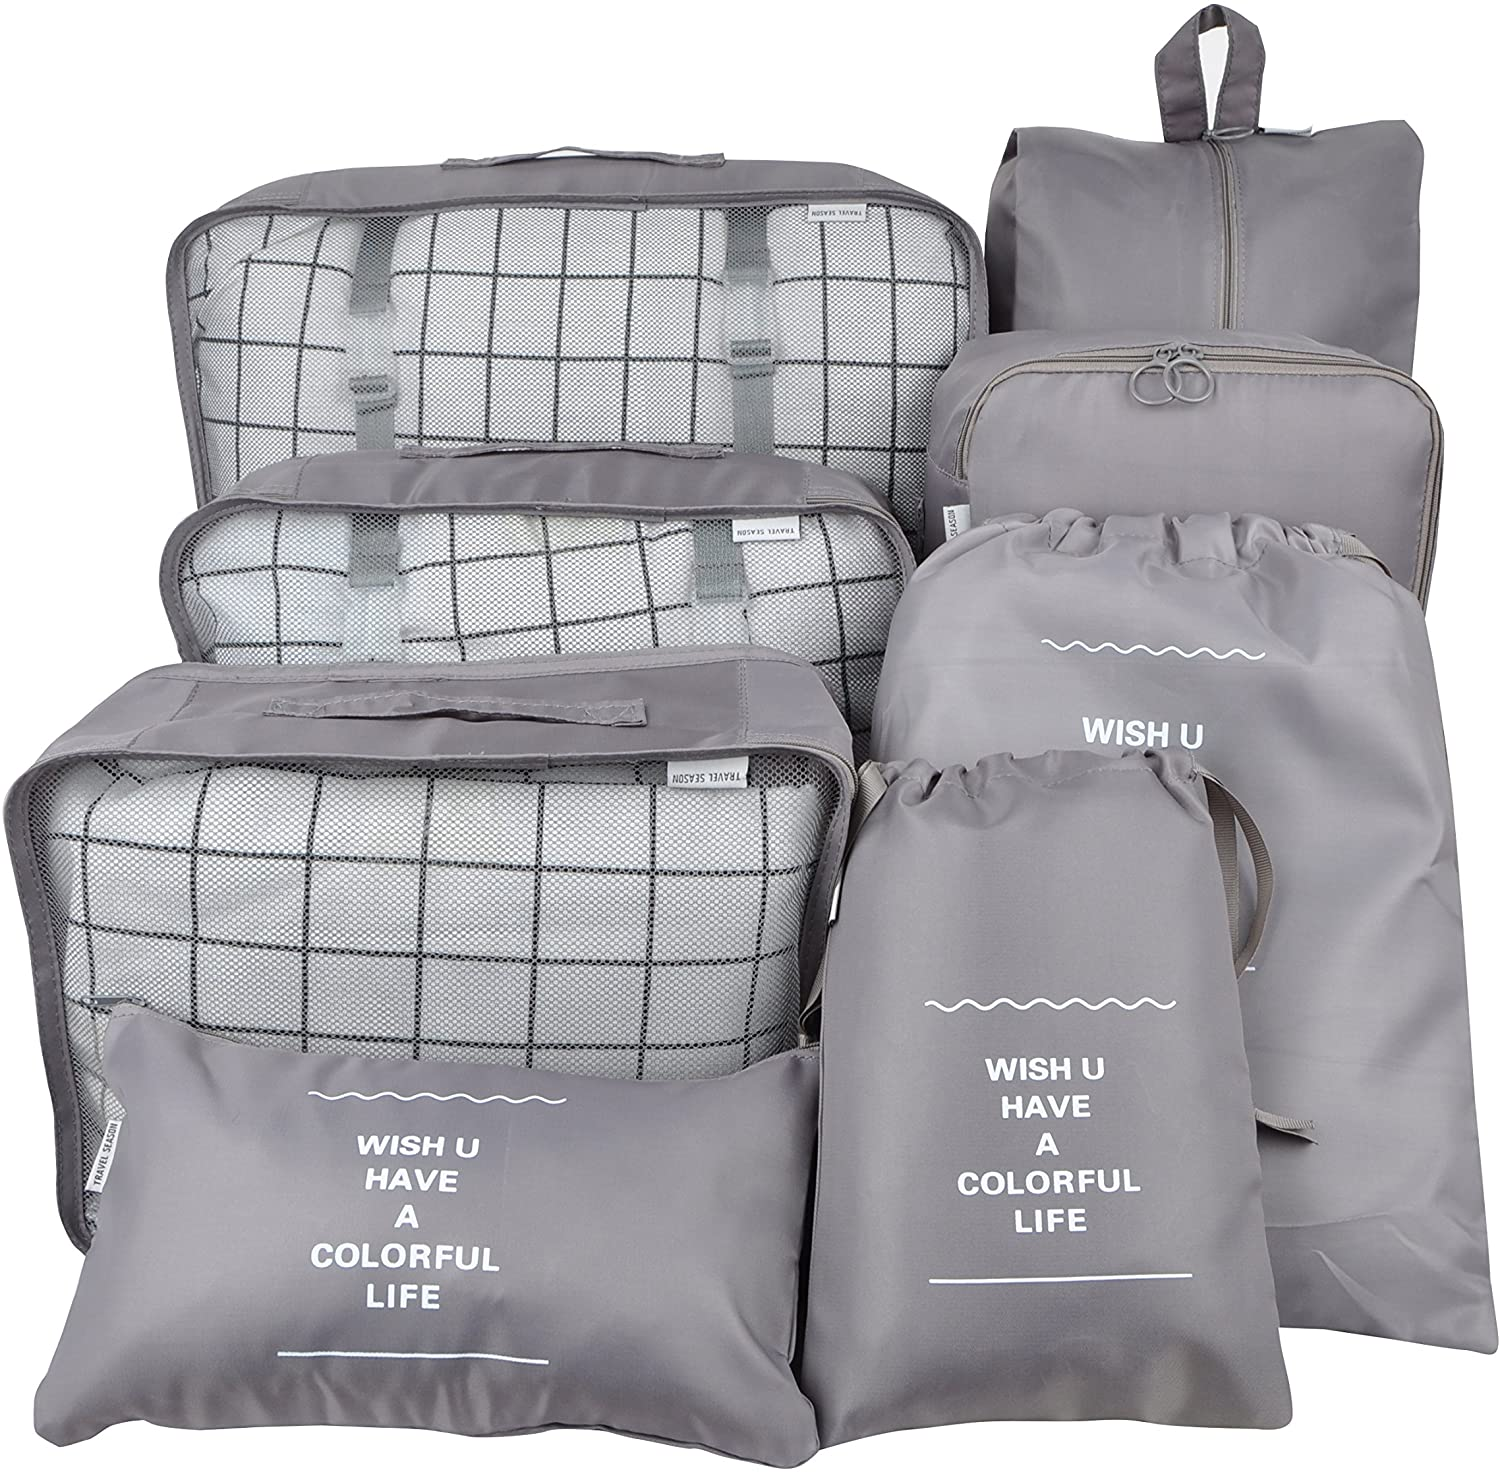 Vercord 8 Set Travel Packing Pods Luggage Organizers Cubes with Laundry Bags Accessories, Grey